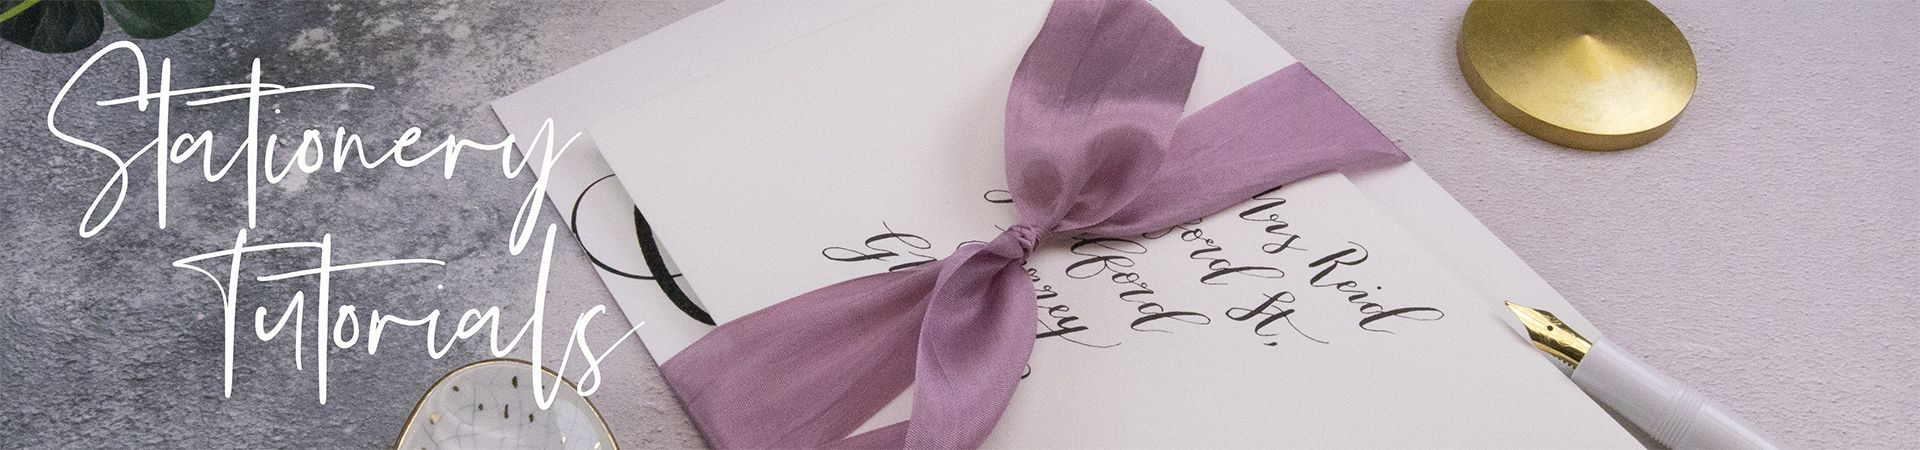 Wedding Stationery Tutorials